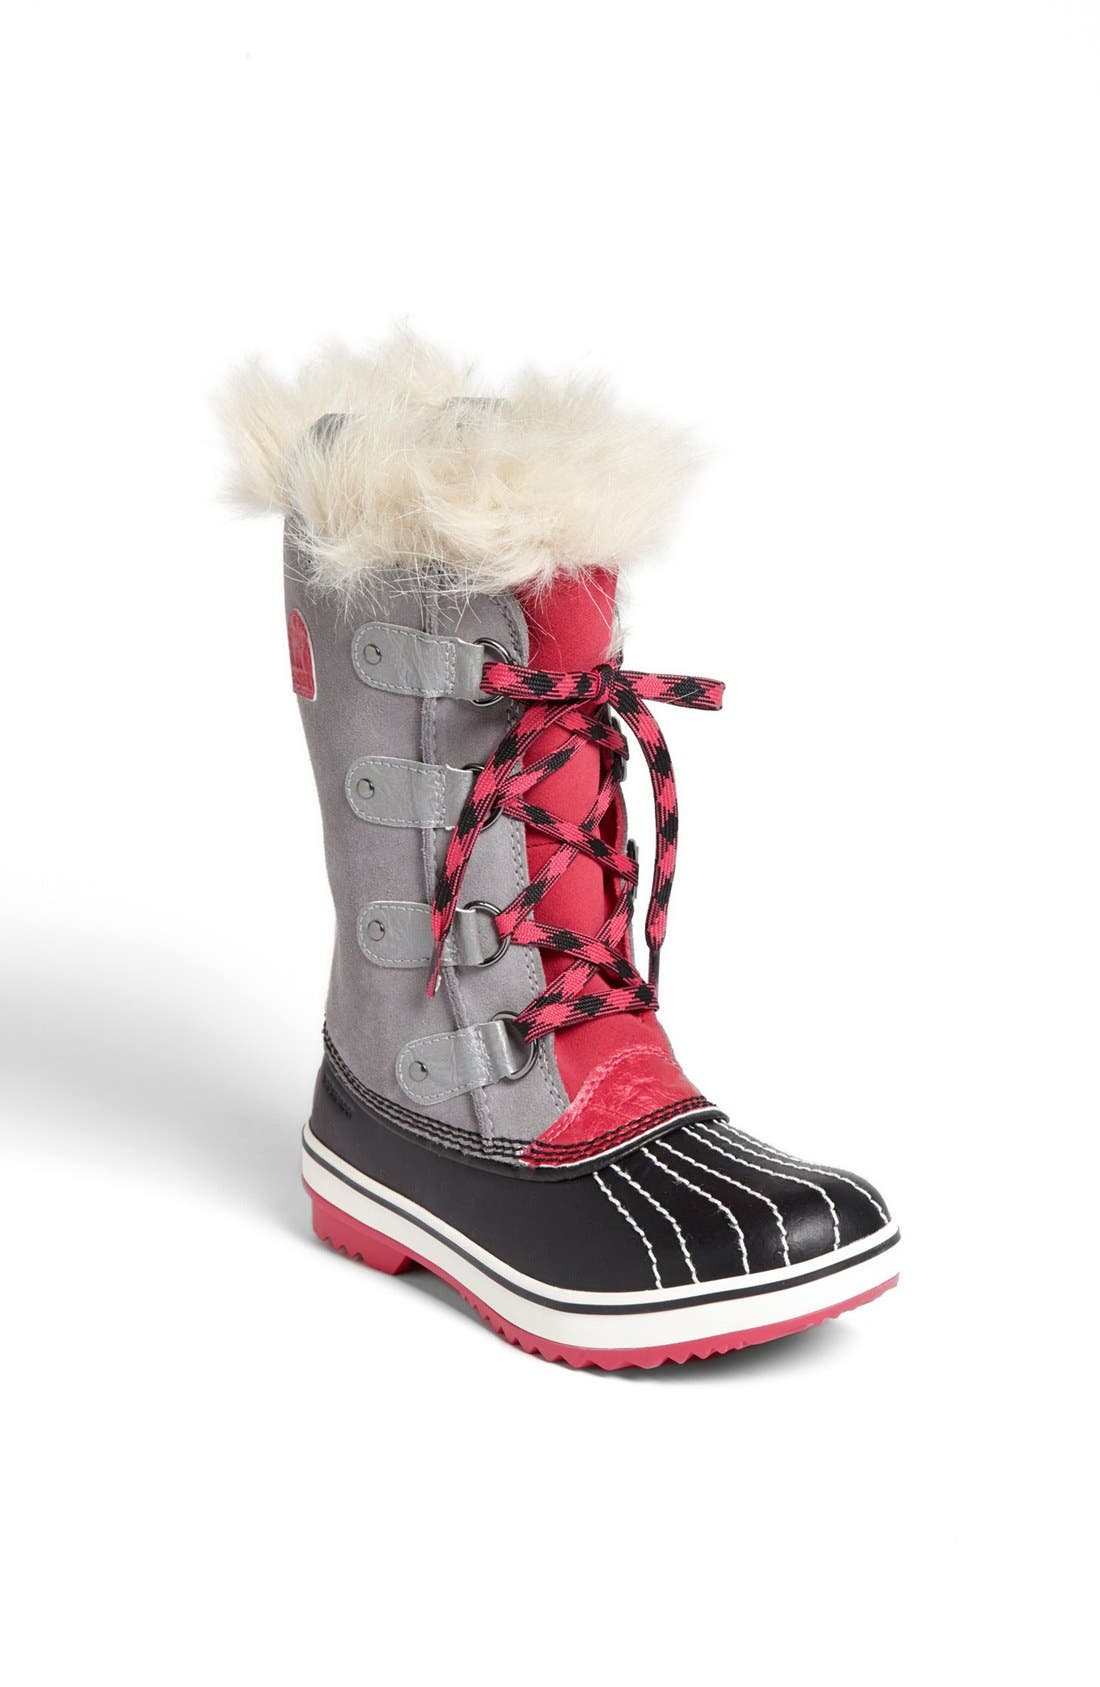 Alternate Image 1 Selected - SOREL 'Tofino' Waterproof Snow Boot (Little Kid & Big Kid)